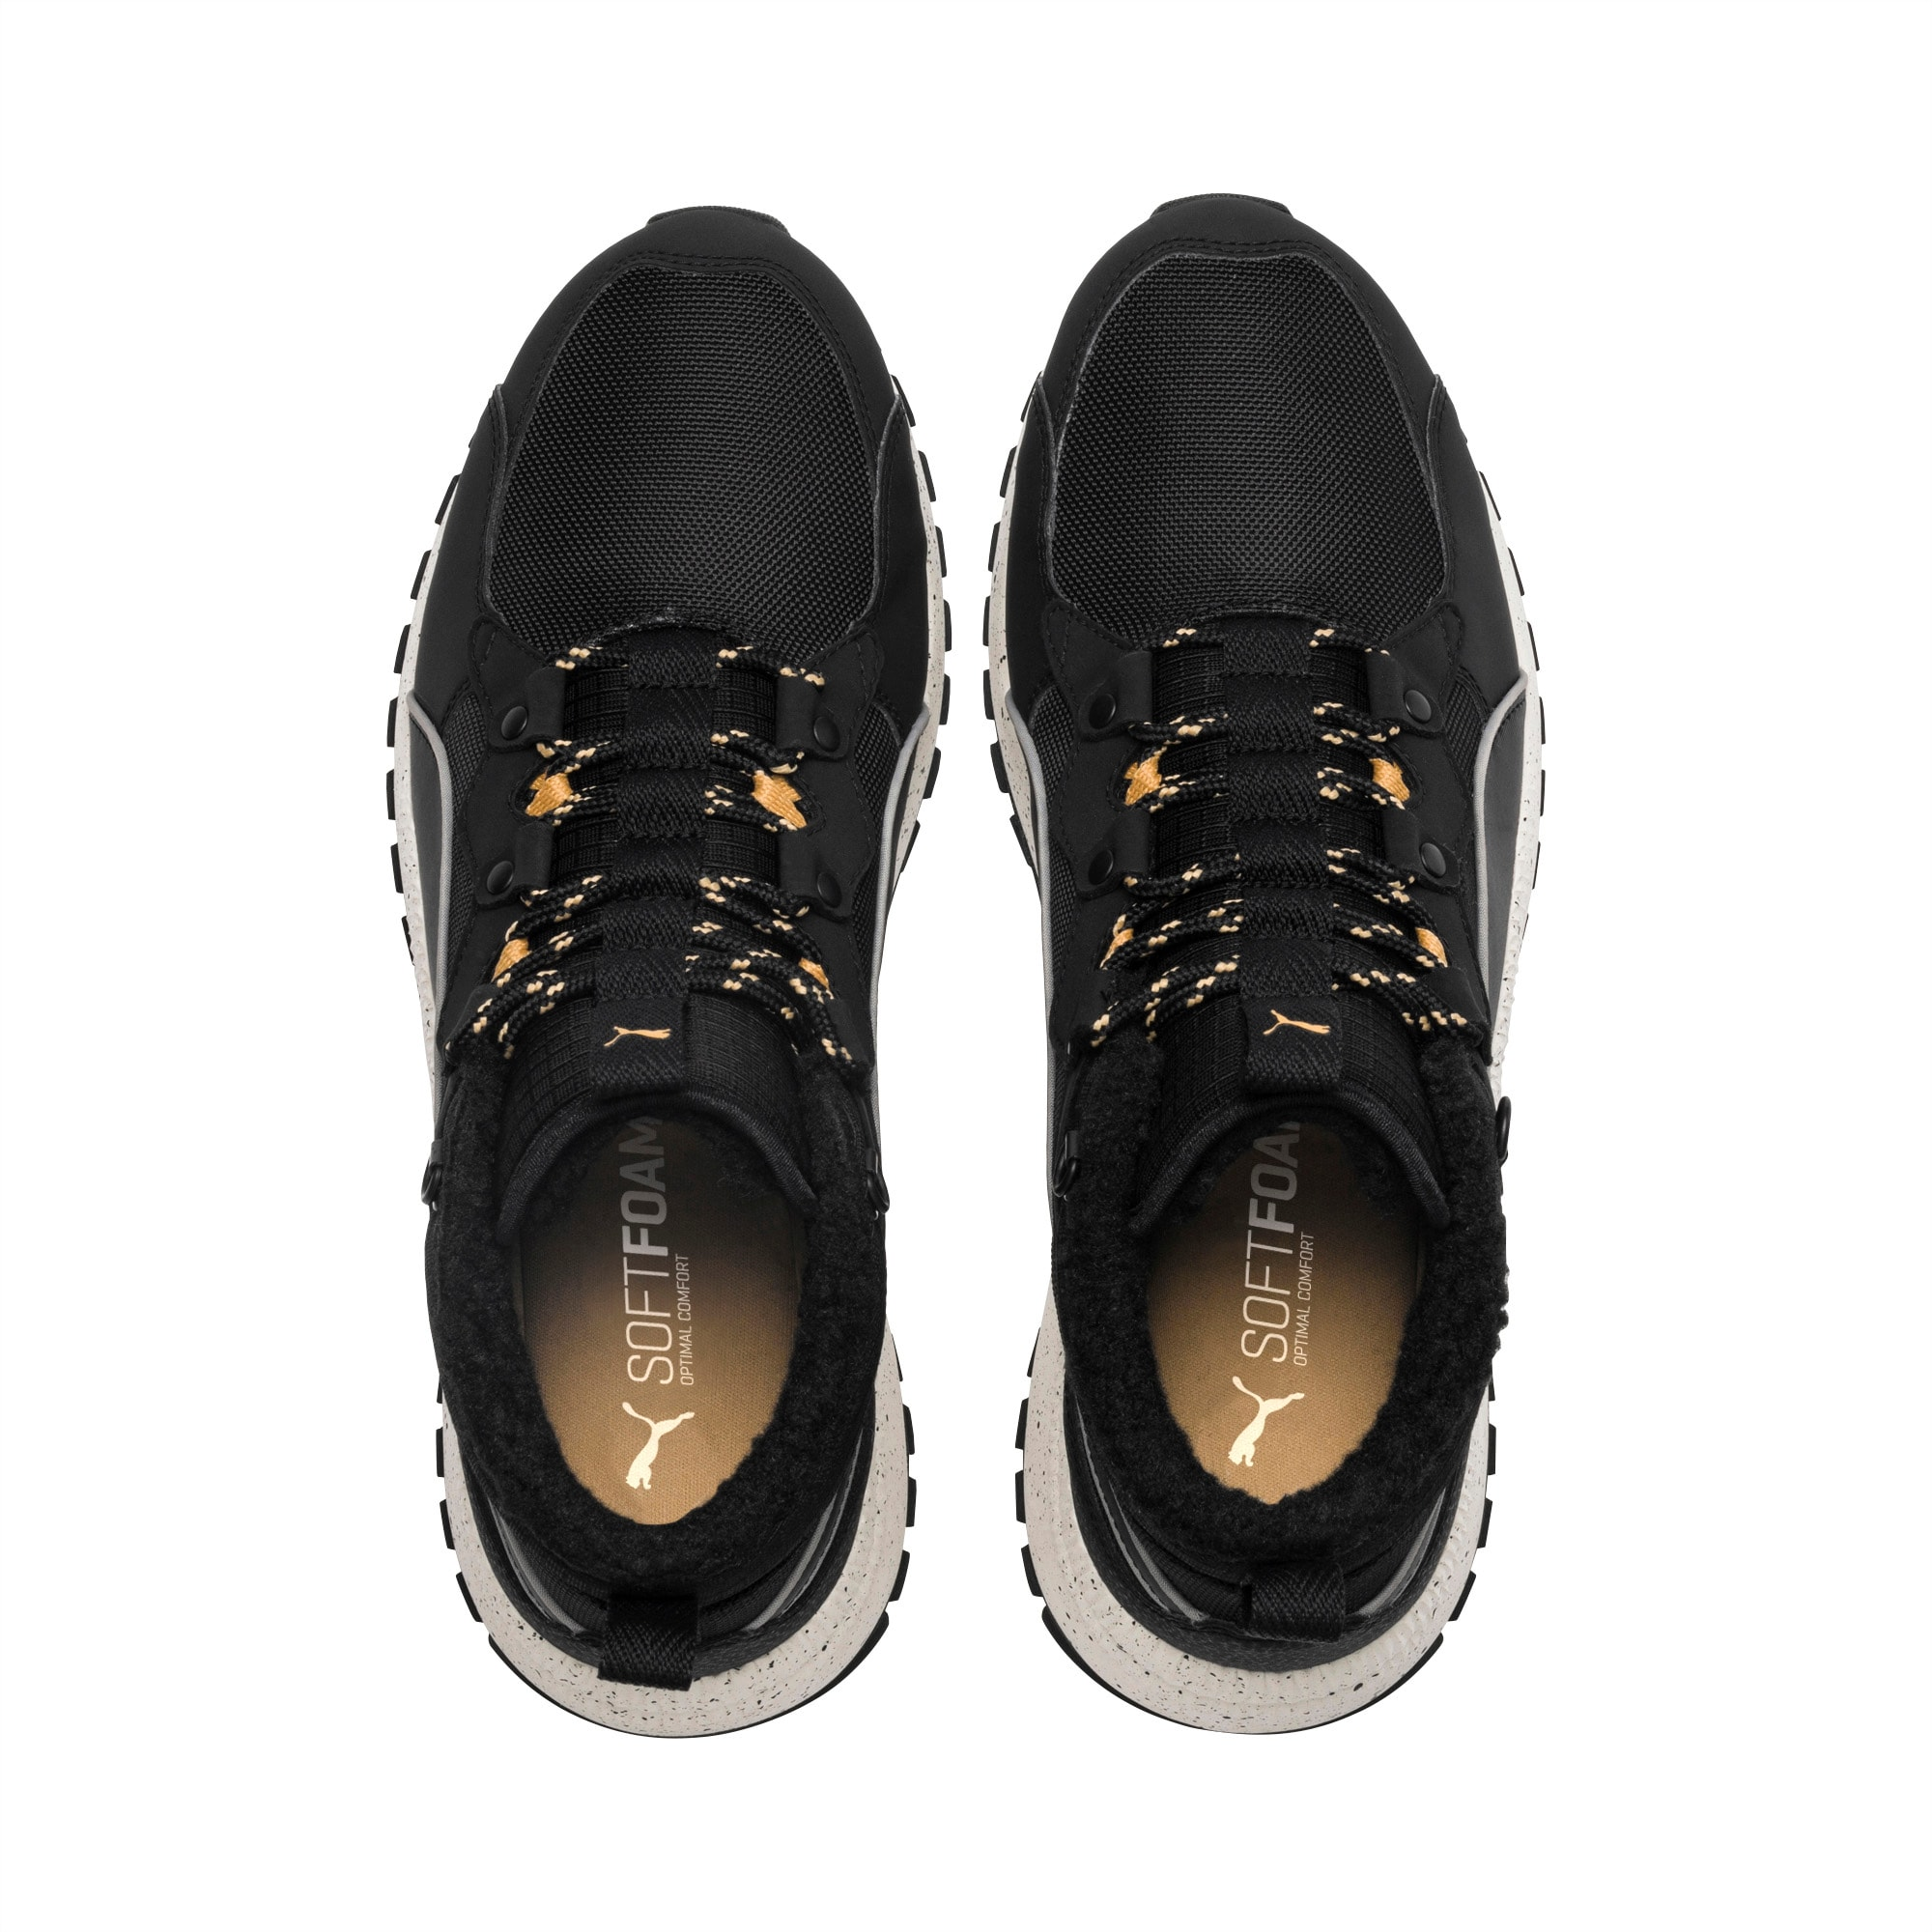 Pacer Next Next Sneakers Boots Pacer Winterised Yfg6yvImb7